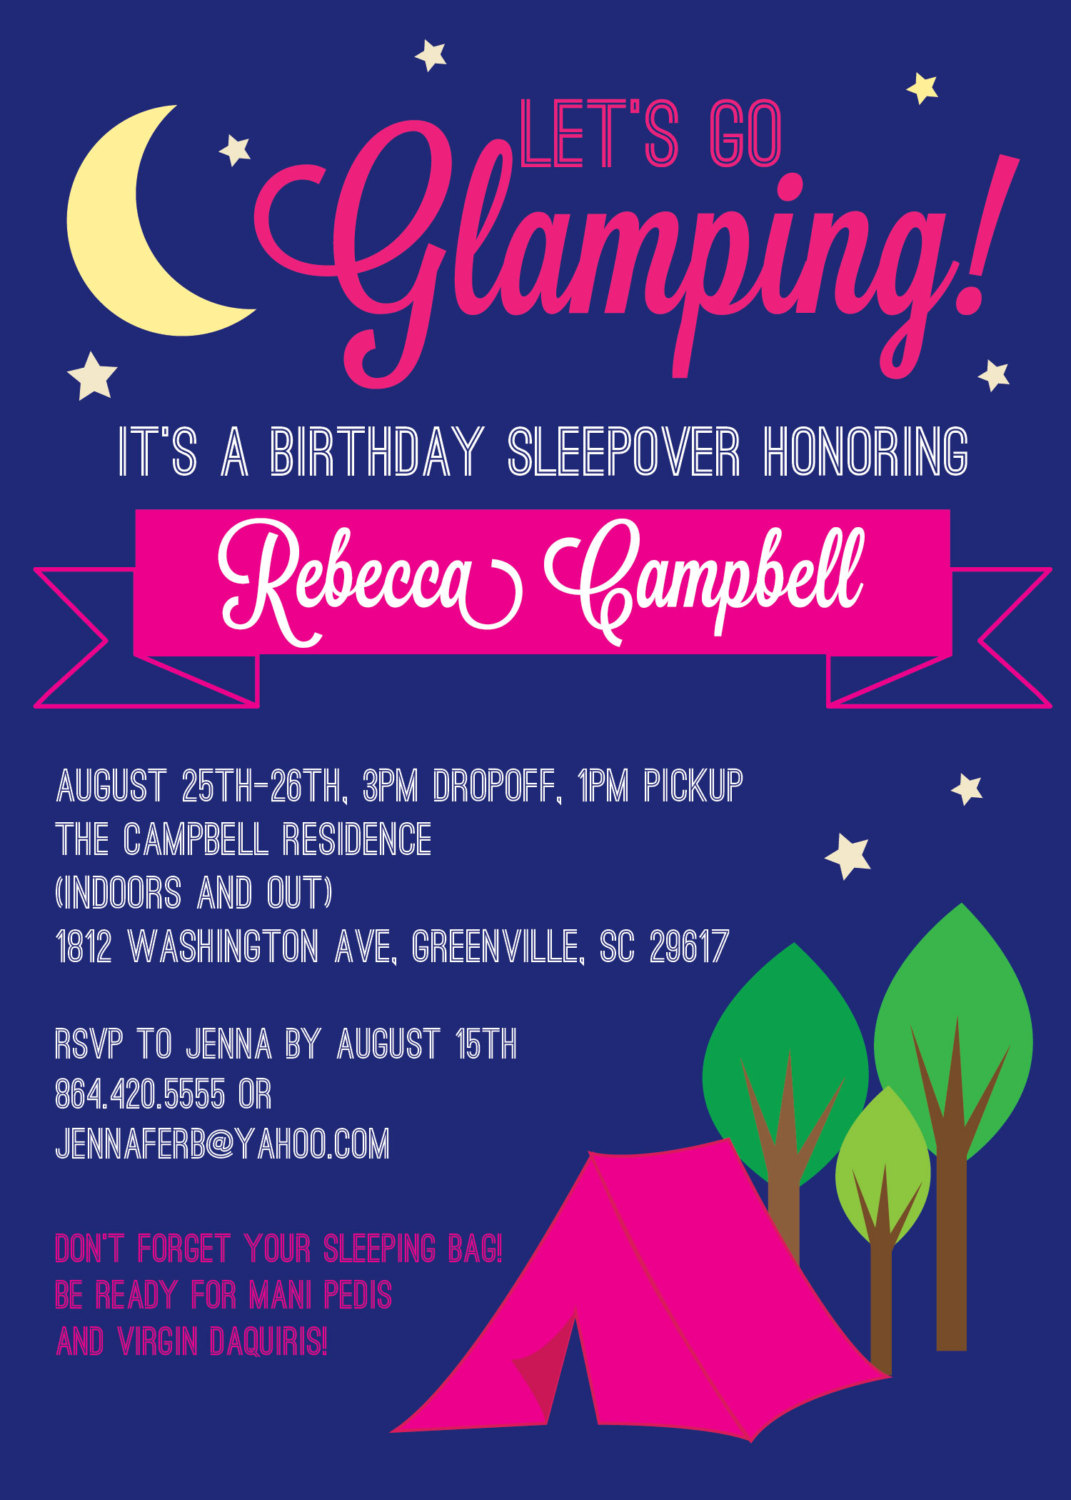 Glamping Invitations Glam Glamour Camping Birthday Bachelorette Girl SET OF 10 From OhCreativeOne LLC